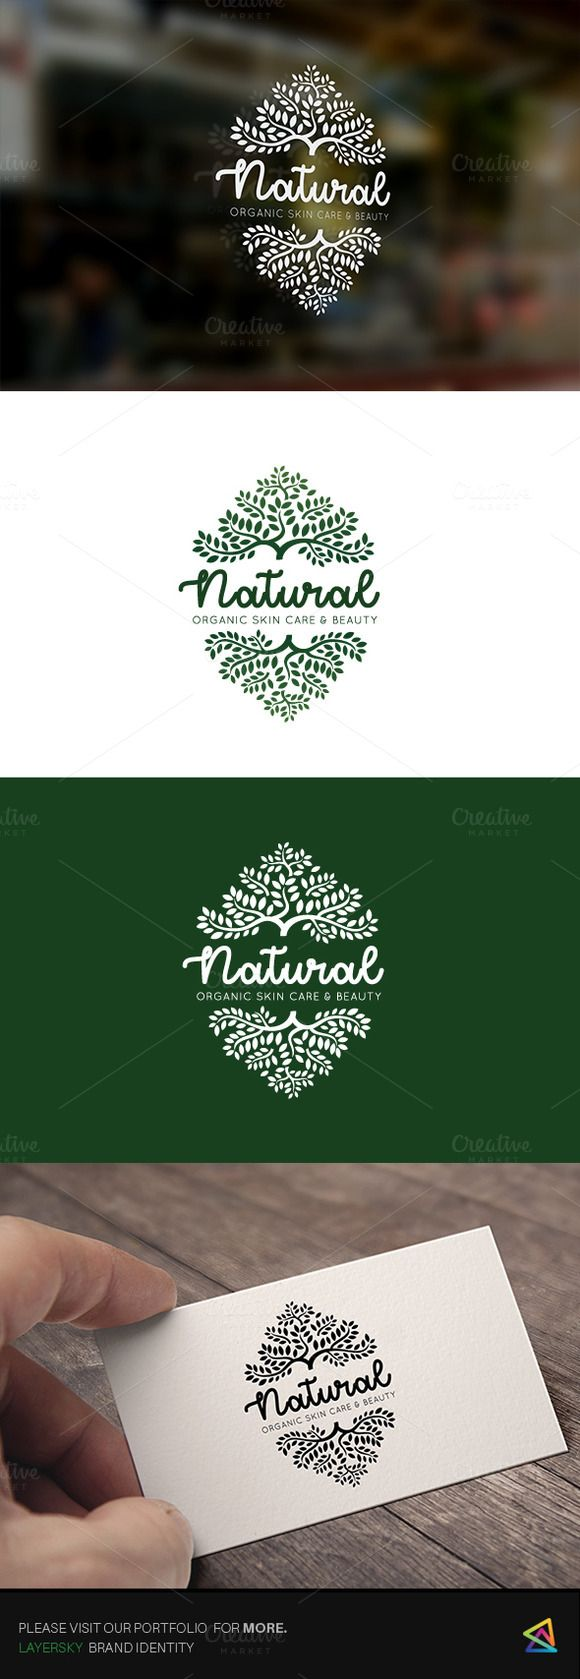 Natural Organic Logo by Super Pig Shop on @creativemarket